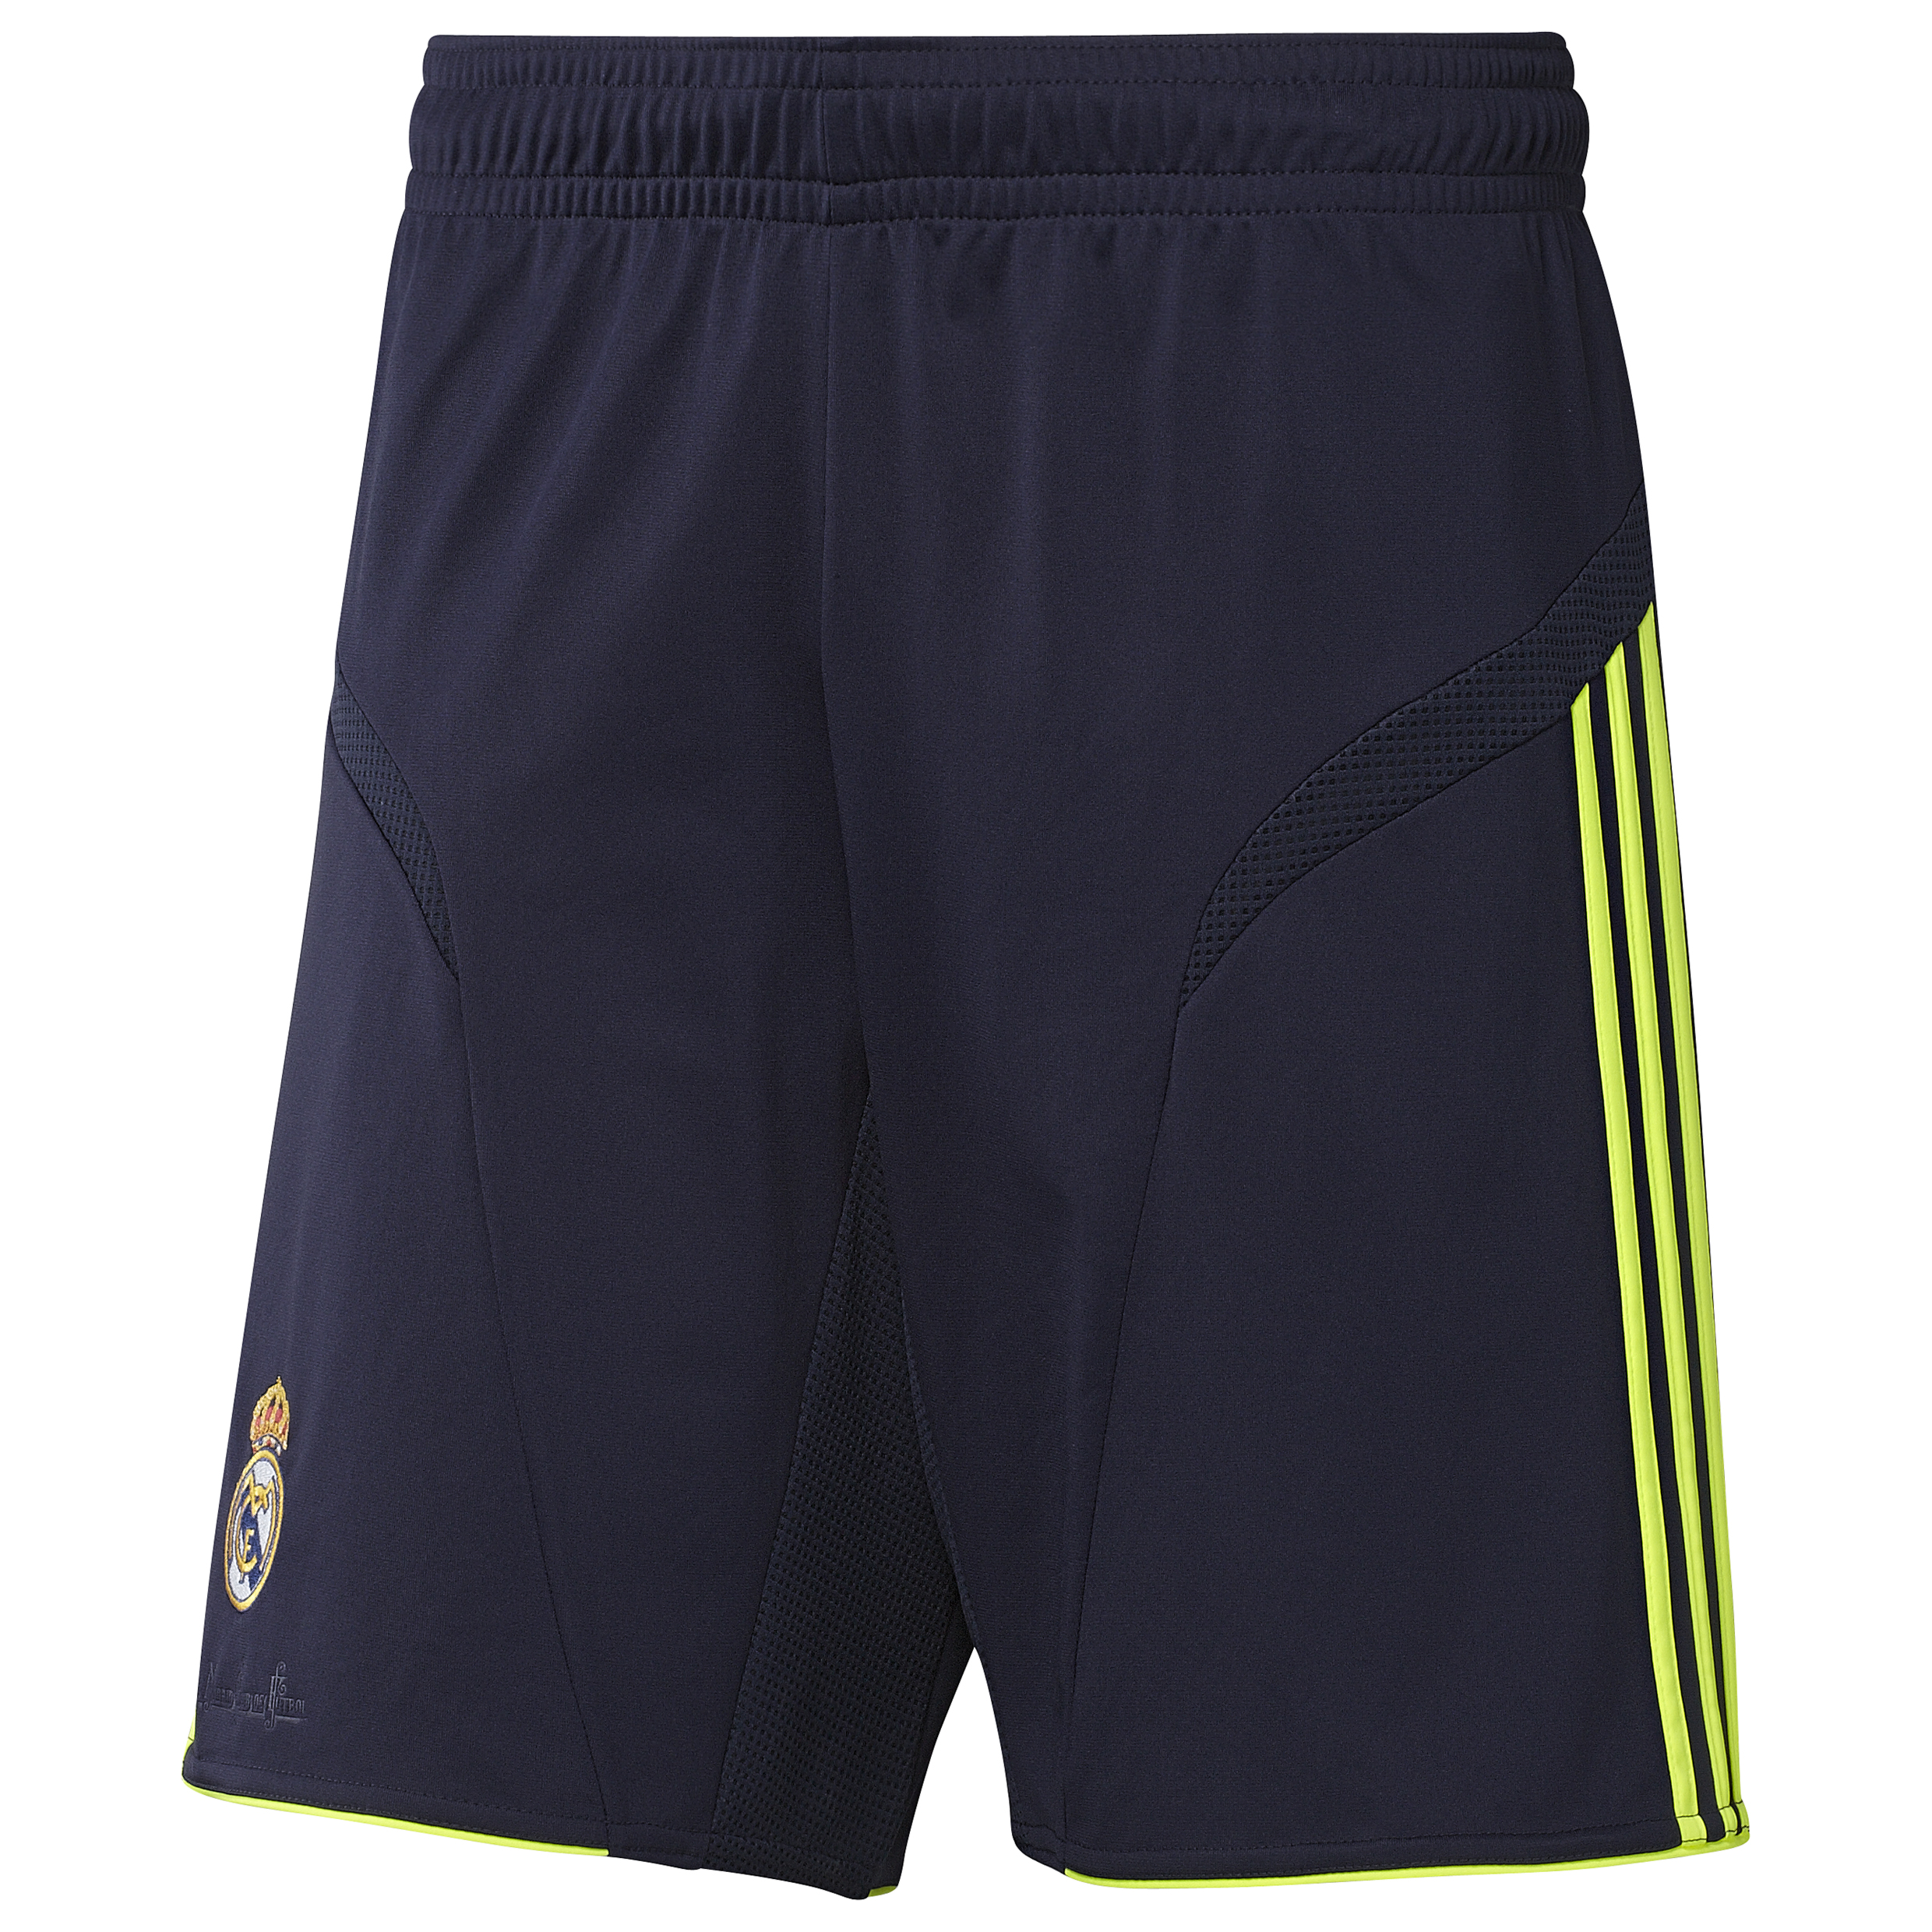 Real Madrid Away Short 2012/13 - Youths